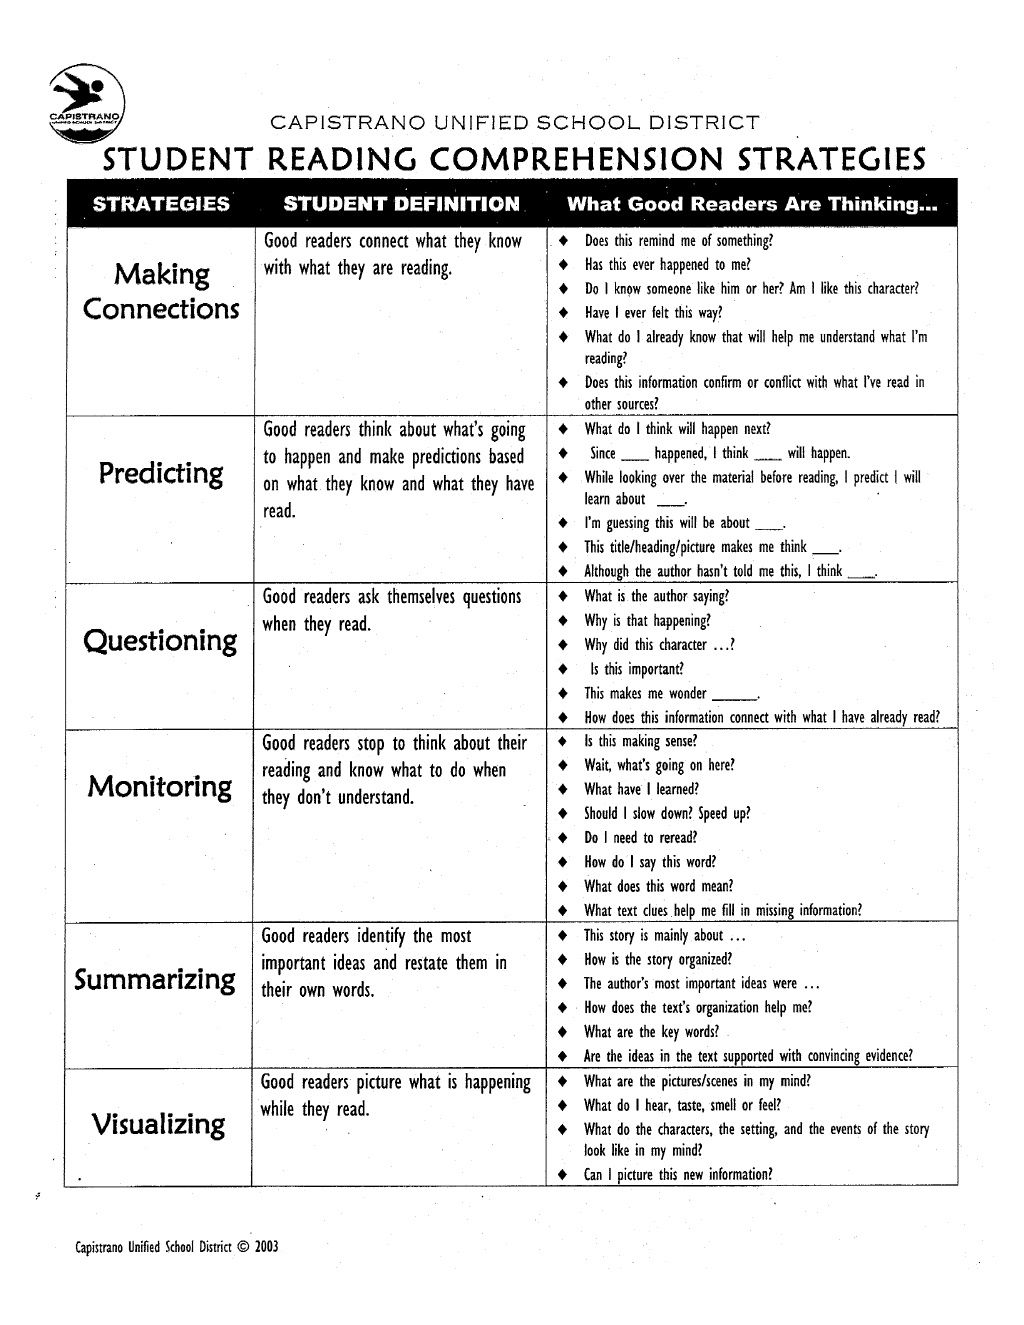 Reading Comprehension Strategies List By Andrea Hnatiuk